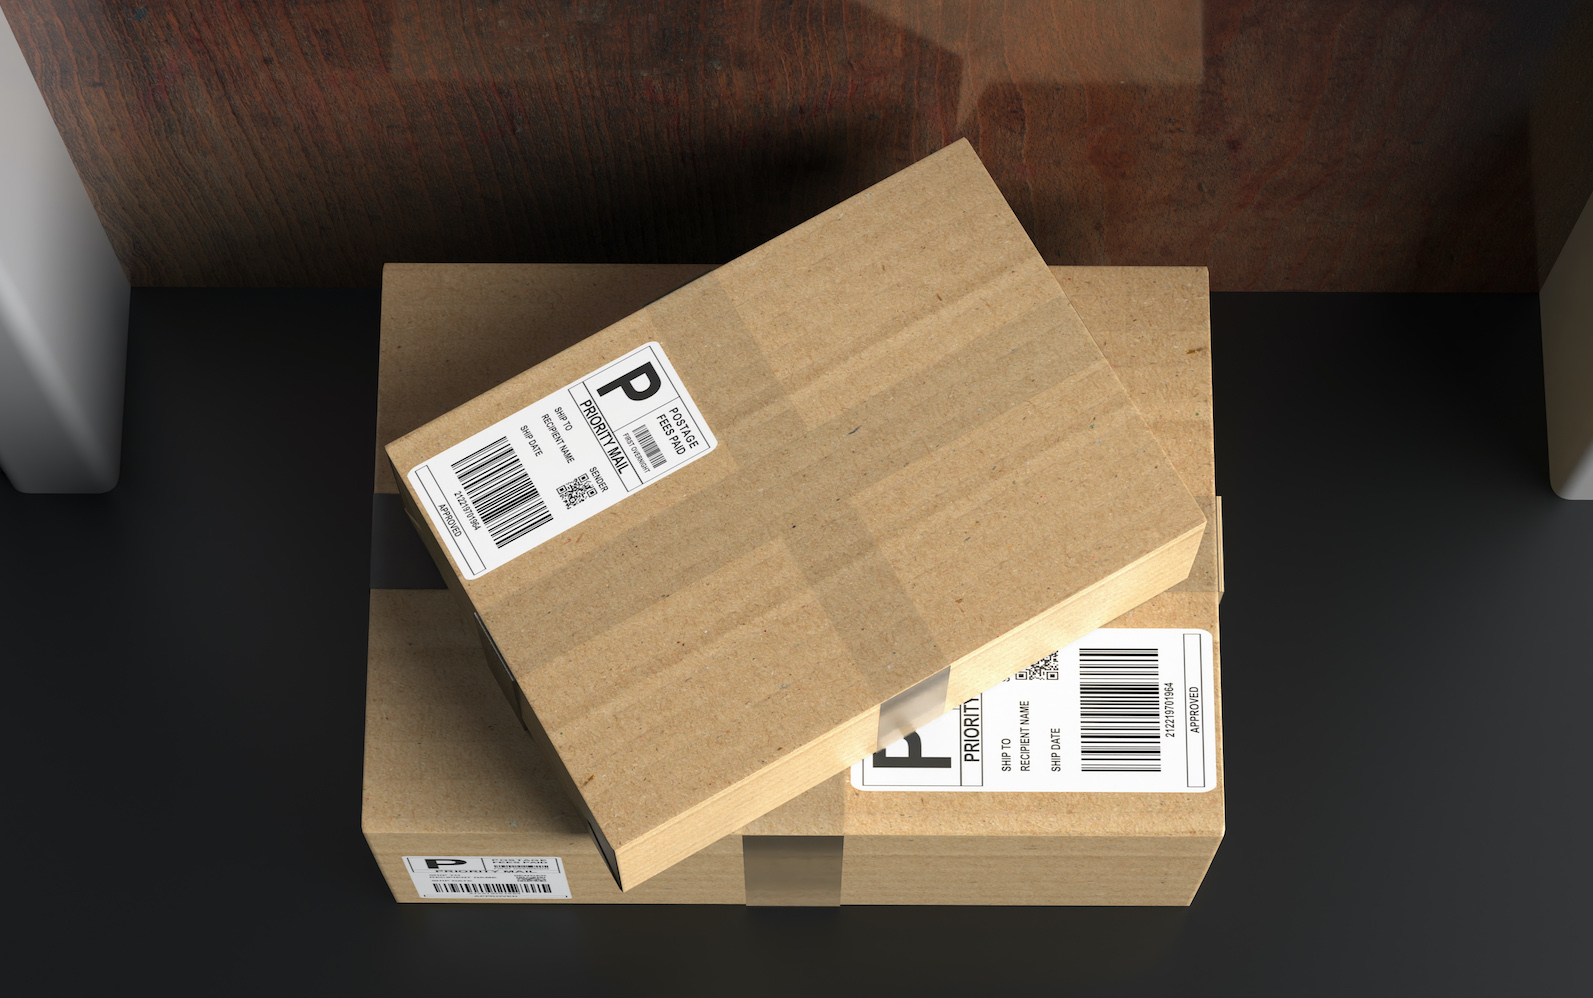 package delivery on doorstep